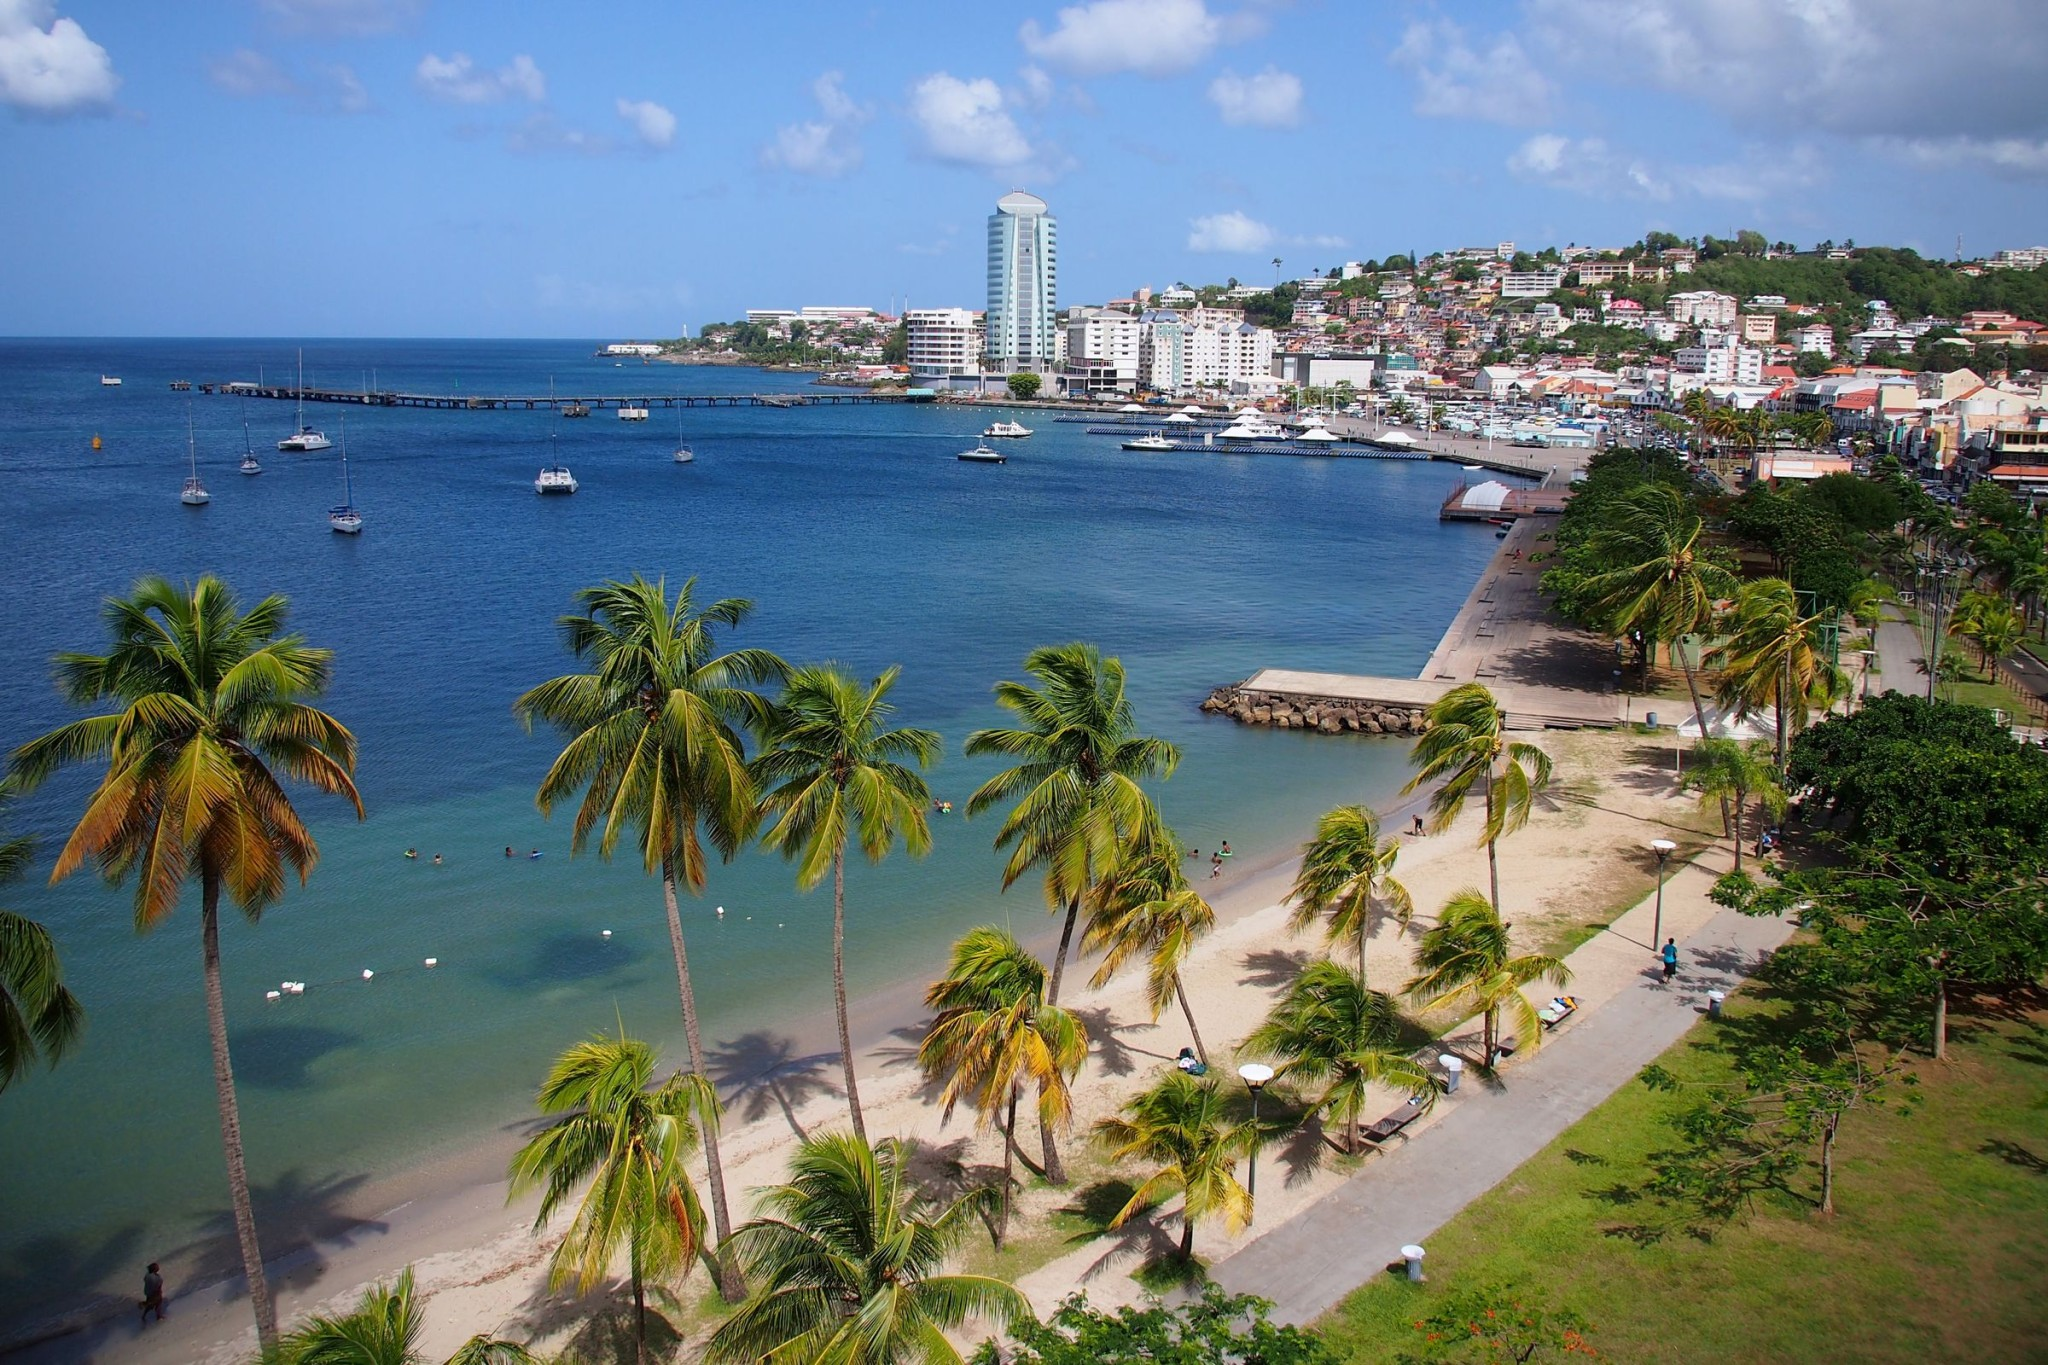 First Look Inside Martinique's Fort Saint Louis in 13 Years: Uncommon Attraction